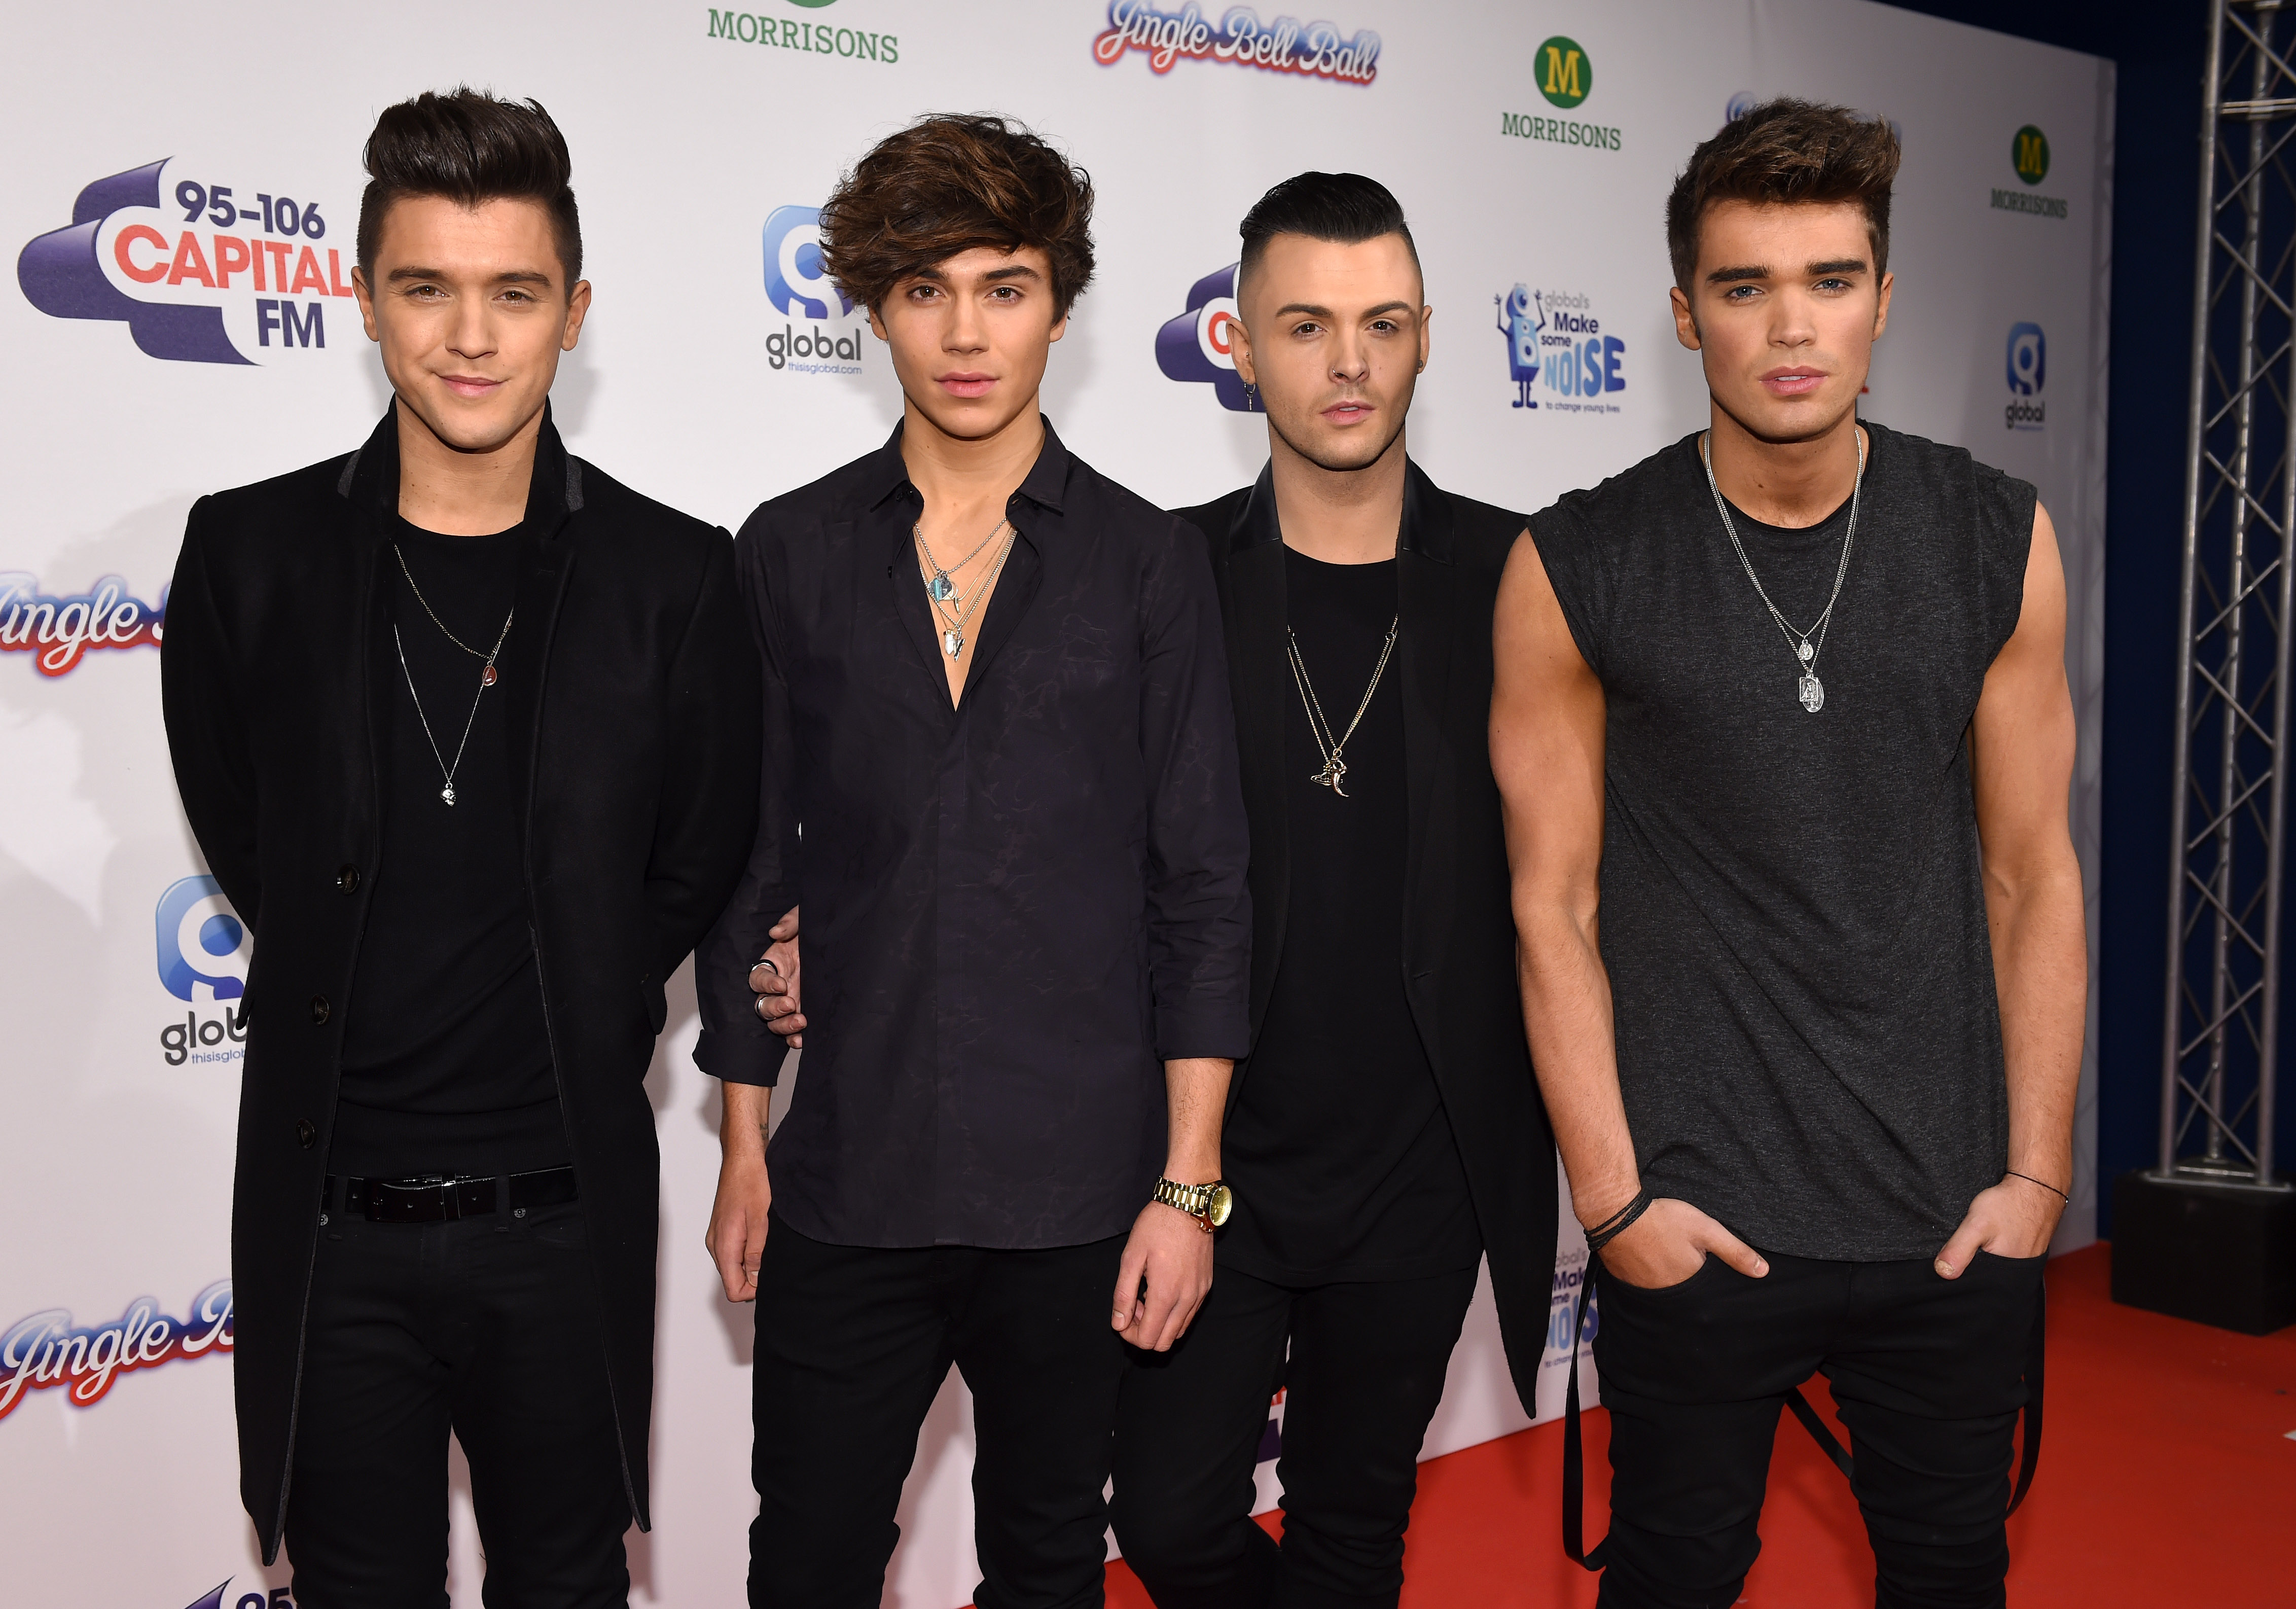 George Shelley fires back at 'jealous' Union J as band boot him out for 'lack of commitment'